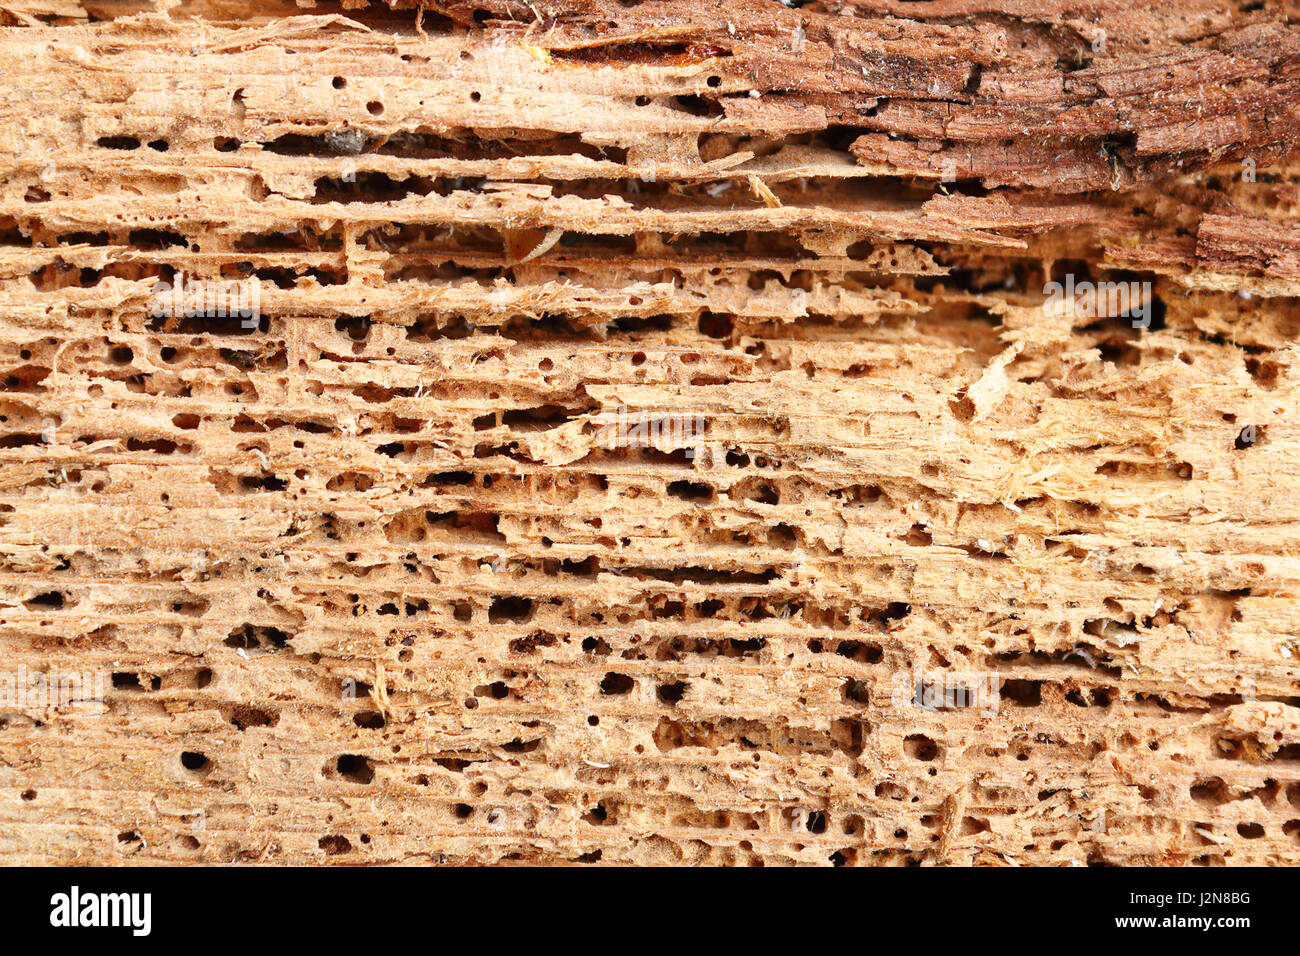 detail of fir wood damaged by fungus and insects, wood boring beetle - Stock Image